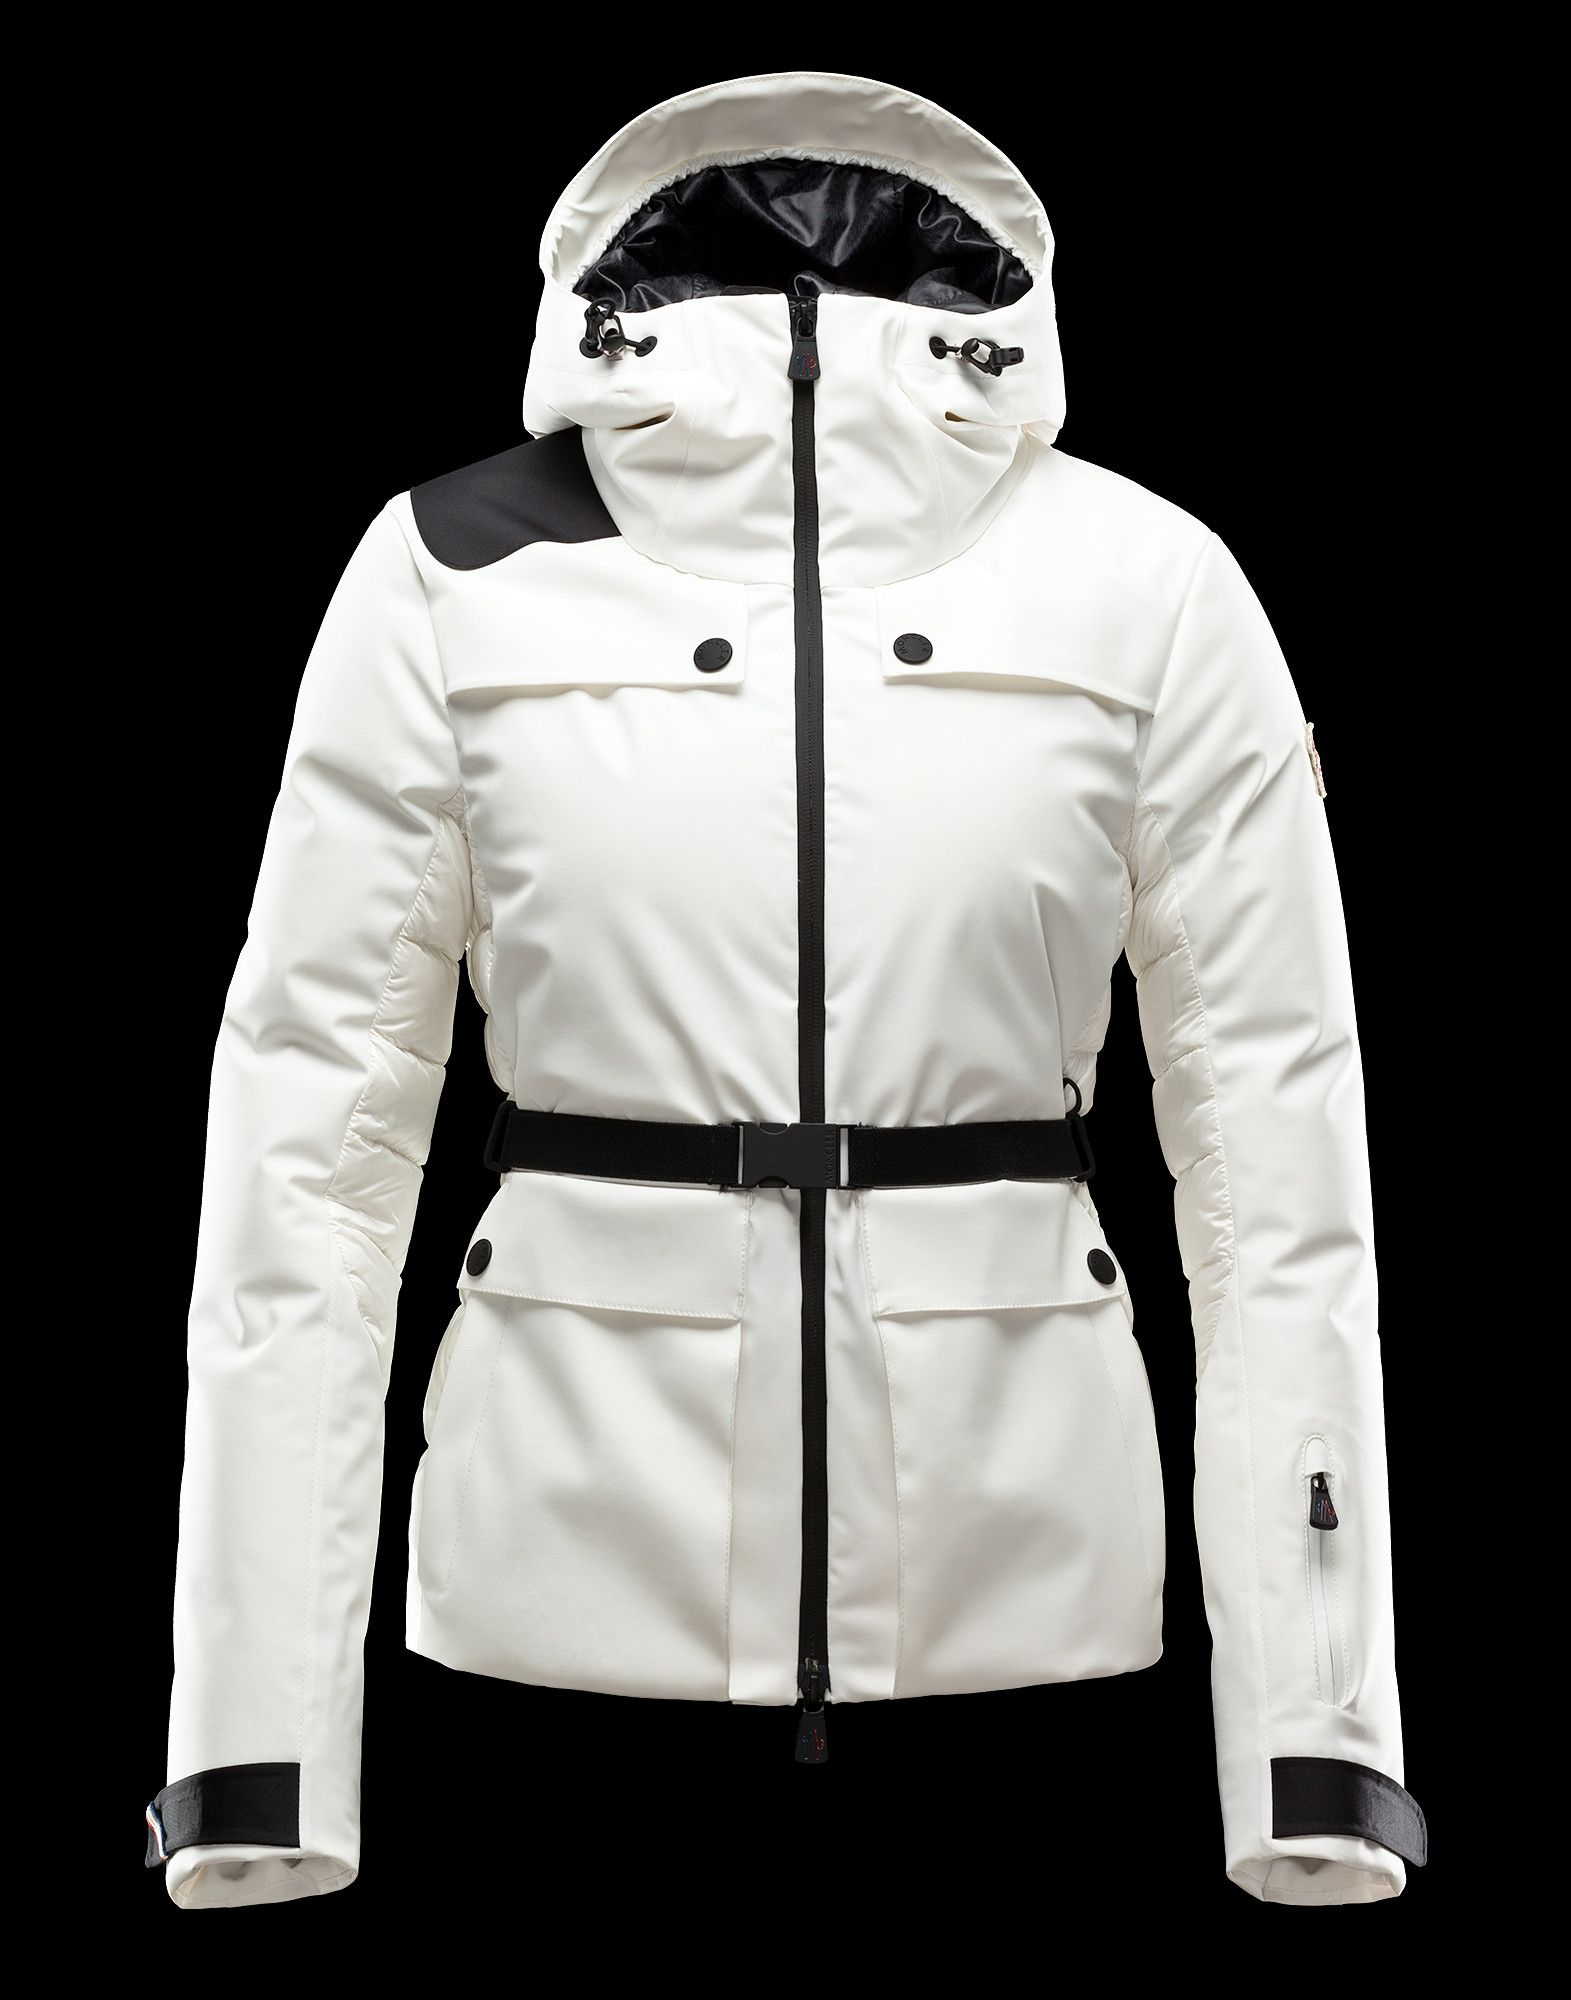 MONCLER GRENOBLE Women - Autumn/Winter 12 - OUTERWEAR - Jacket - TABUCHET